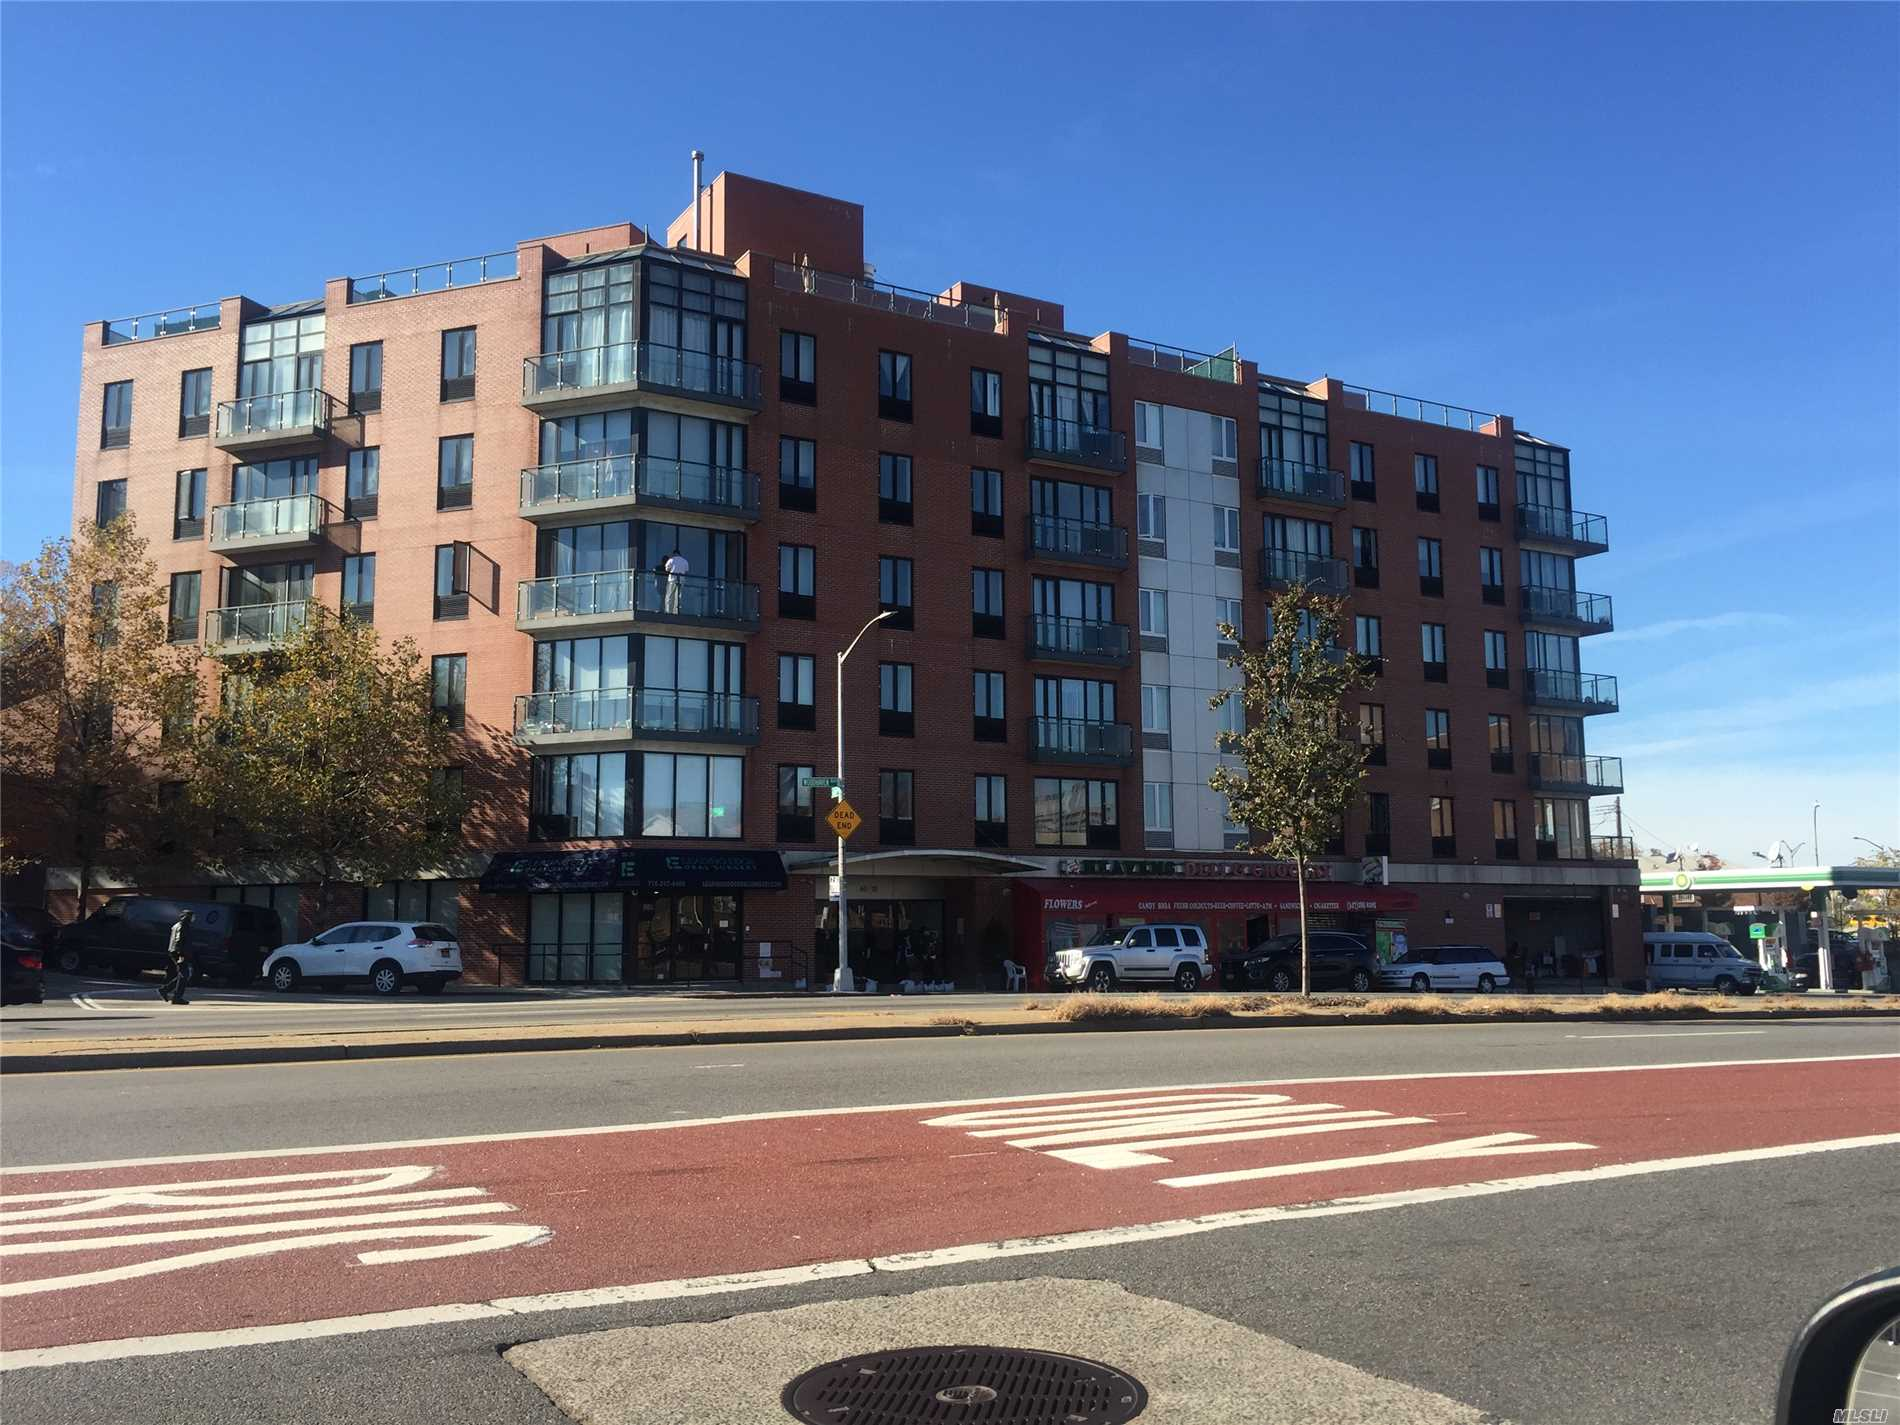 Priced Right. See This Beautiful Modern Unit With Wood Floors, Modern Eat-In-Kitchen With Island, & Terrace Overlooking 1st Floor Patio. Near Trains, Queens Center, Restaurants, 1st Floor Shops, Highways And More. Only 25-30 Minutes To Nyc By Train. It's A Well Kept Modern Elevator Building.